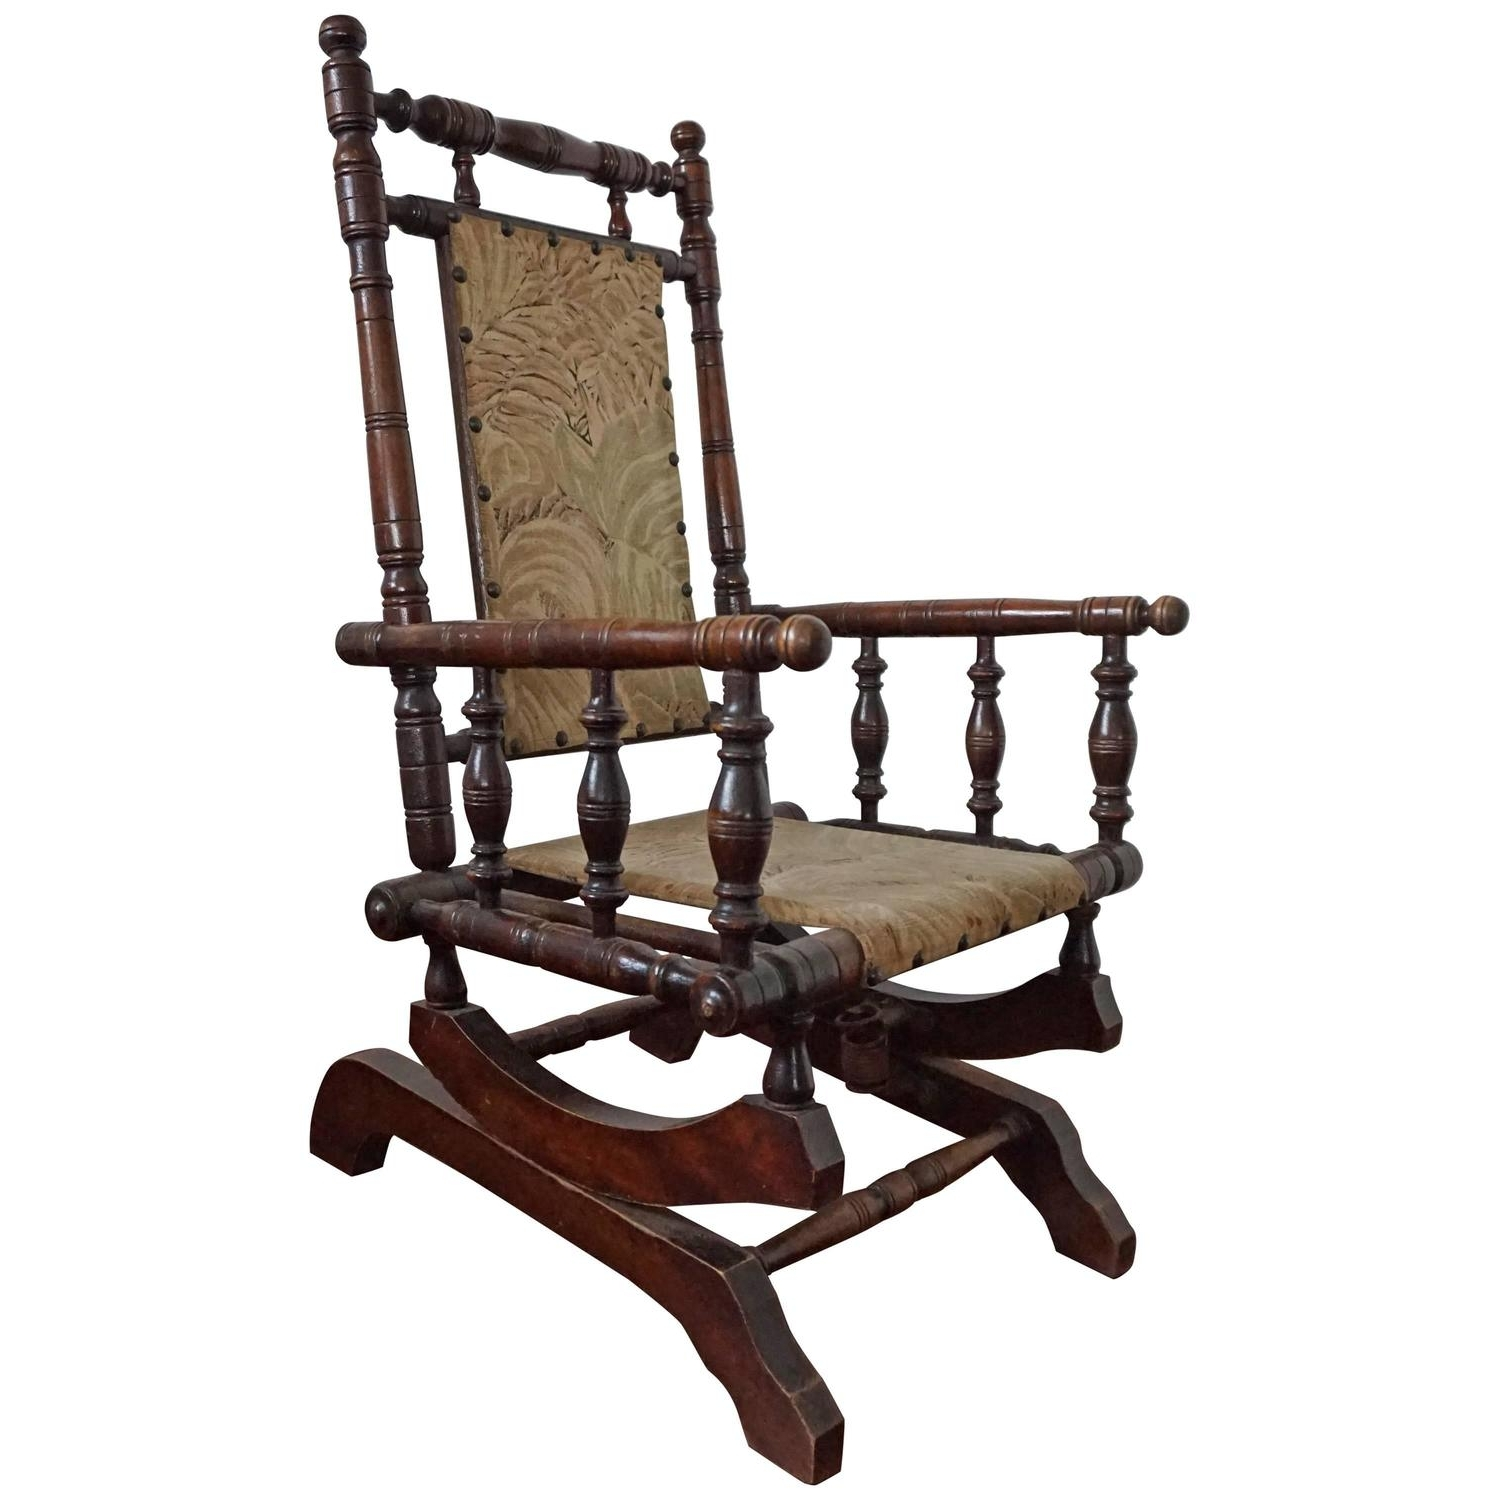 Famous Antique Rocking Chairs Intended For Rare Antique Rocking Chair For Children American Rocker For Child Or (View 10 of 20)